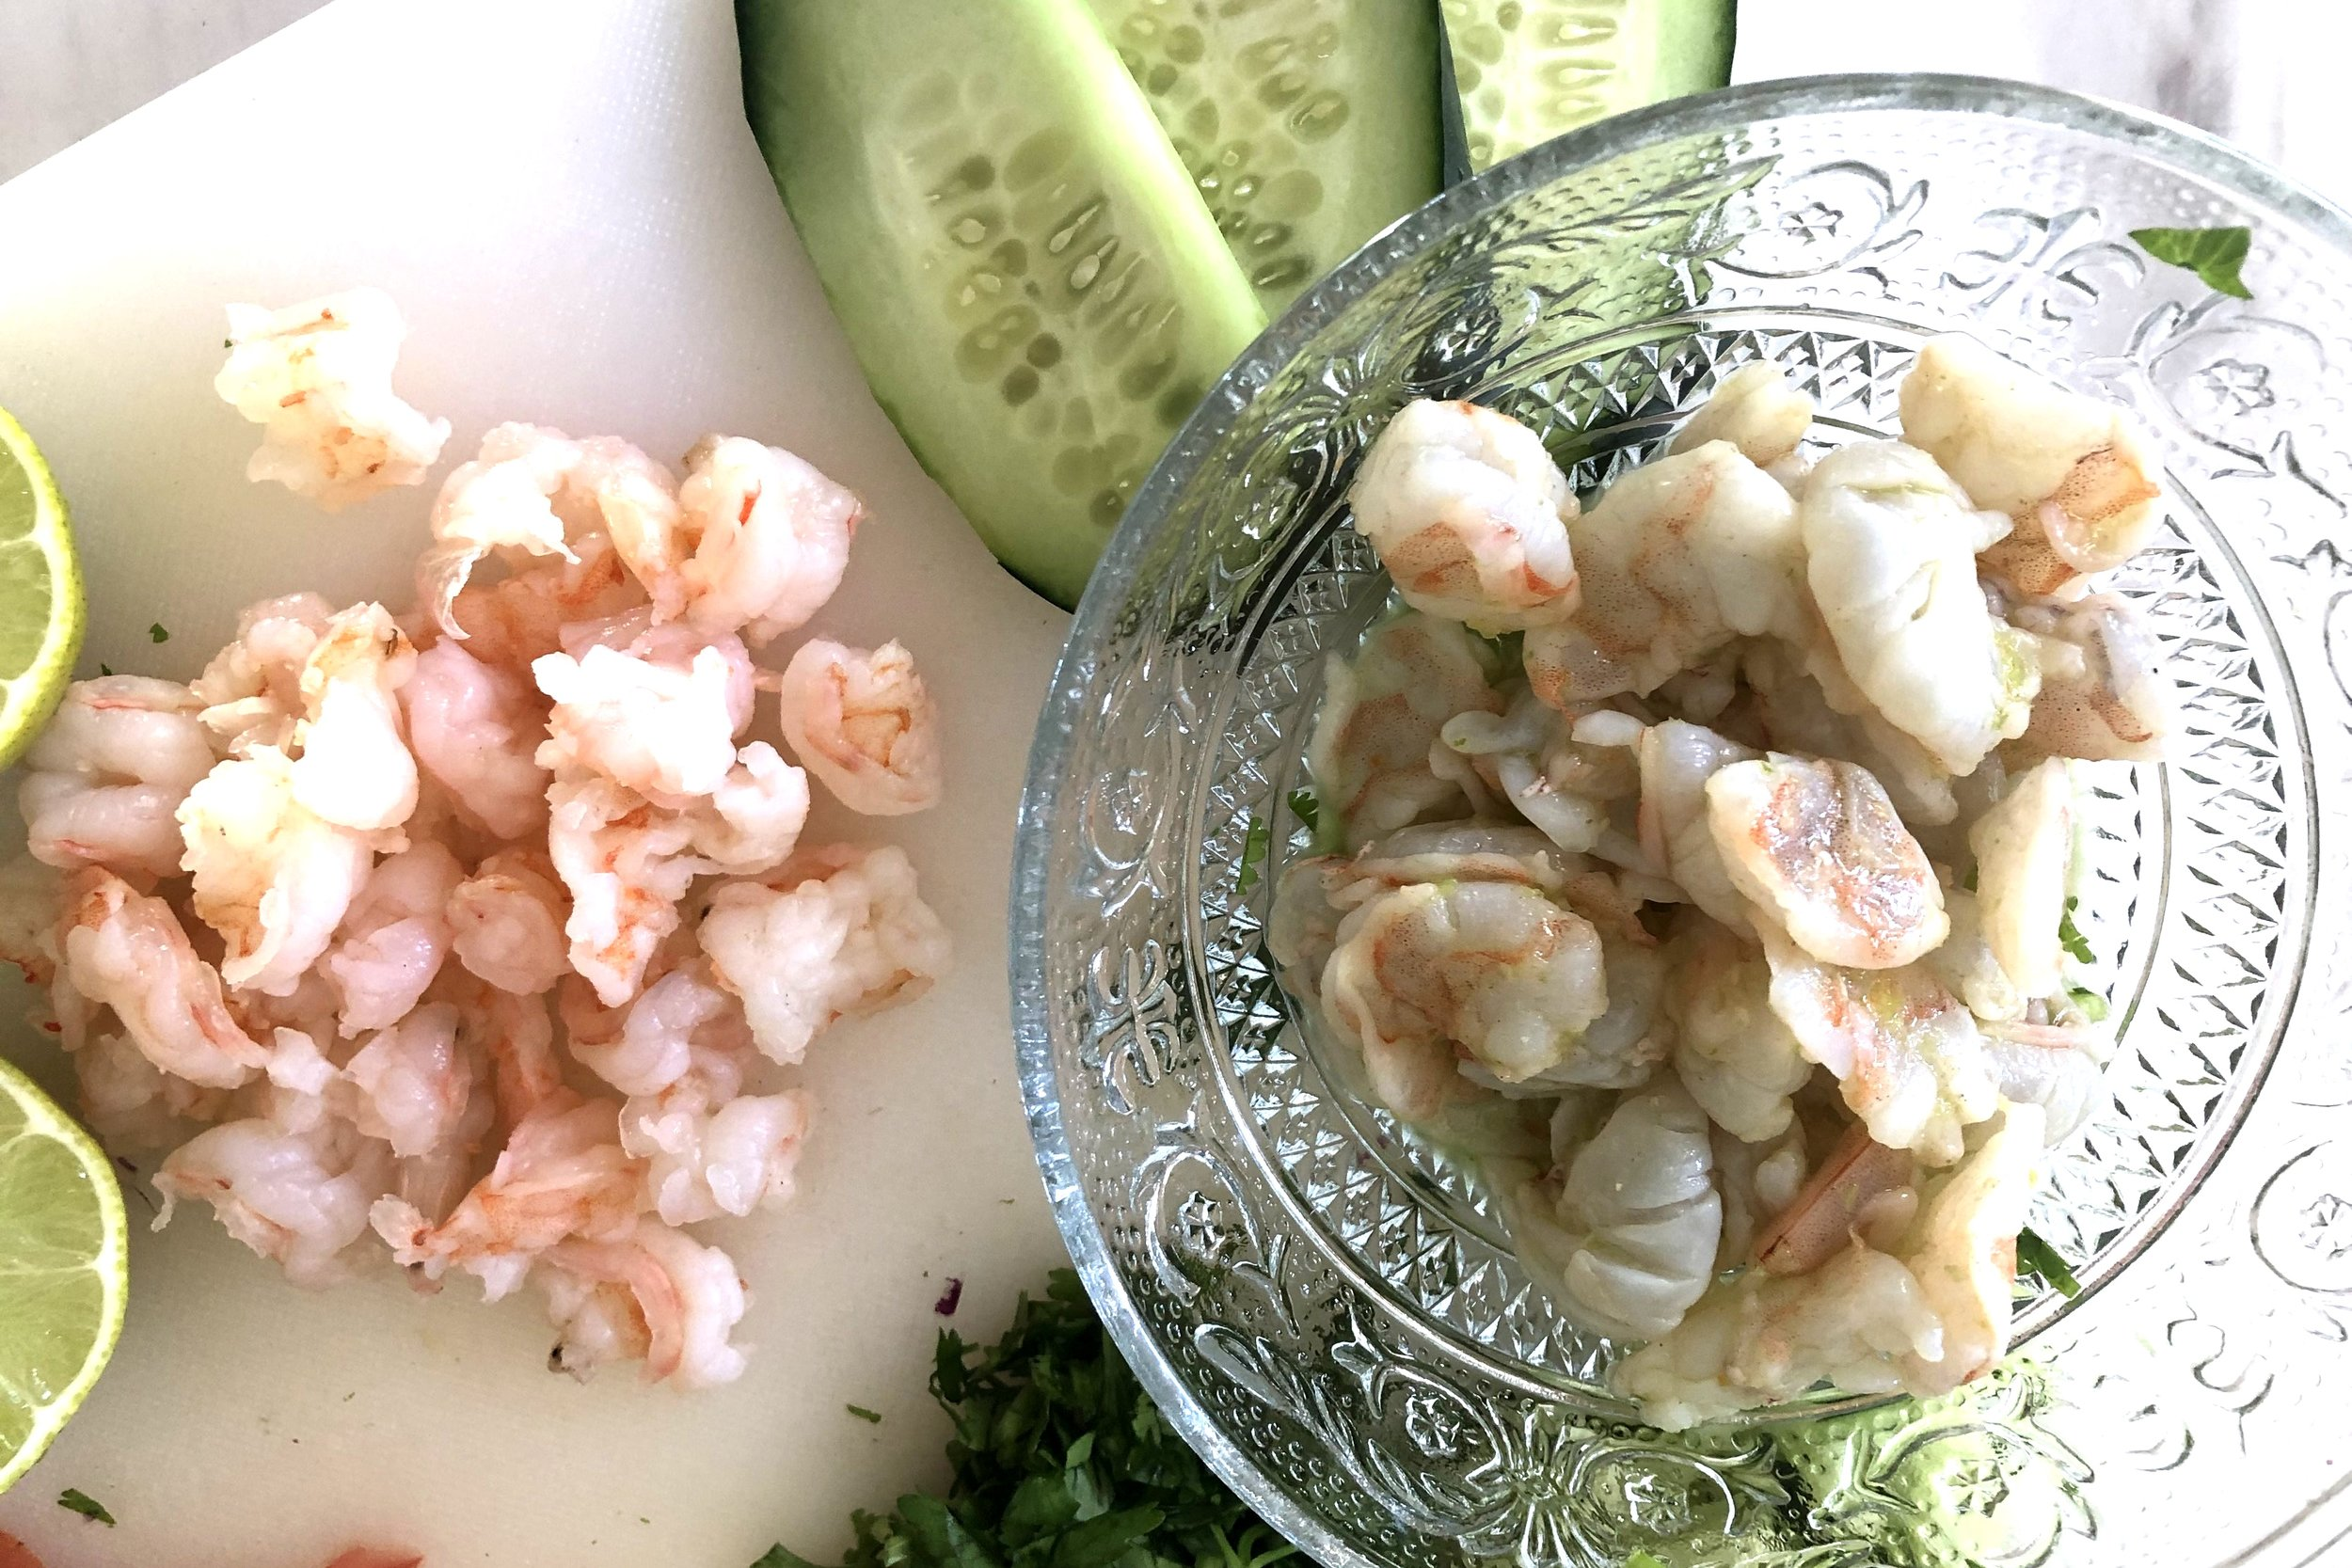 Here you can see the difference between shrimp that is flash boiled (on the left) and shrimp that is cooked by lime (on the right)